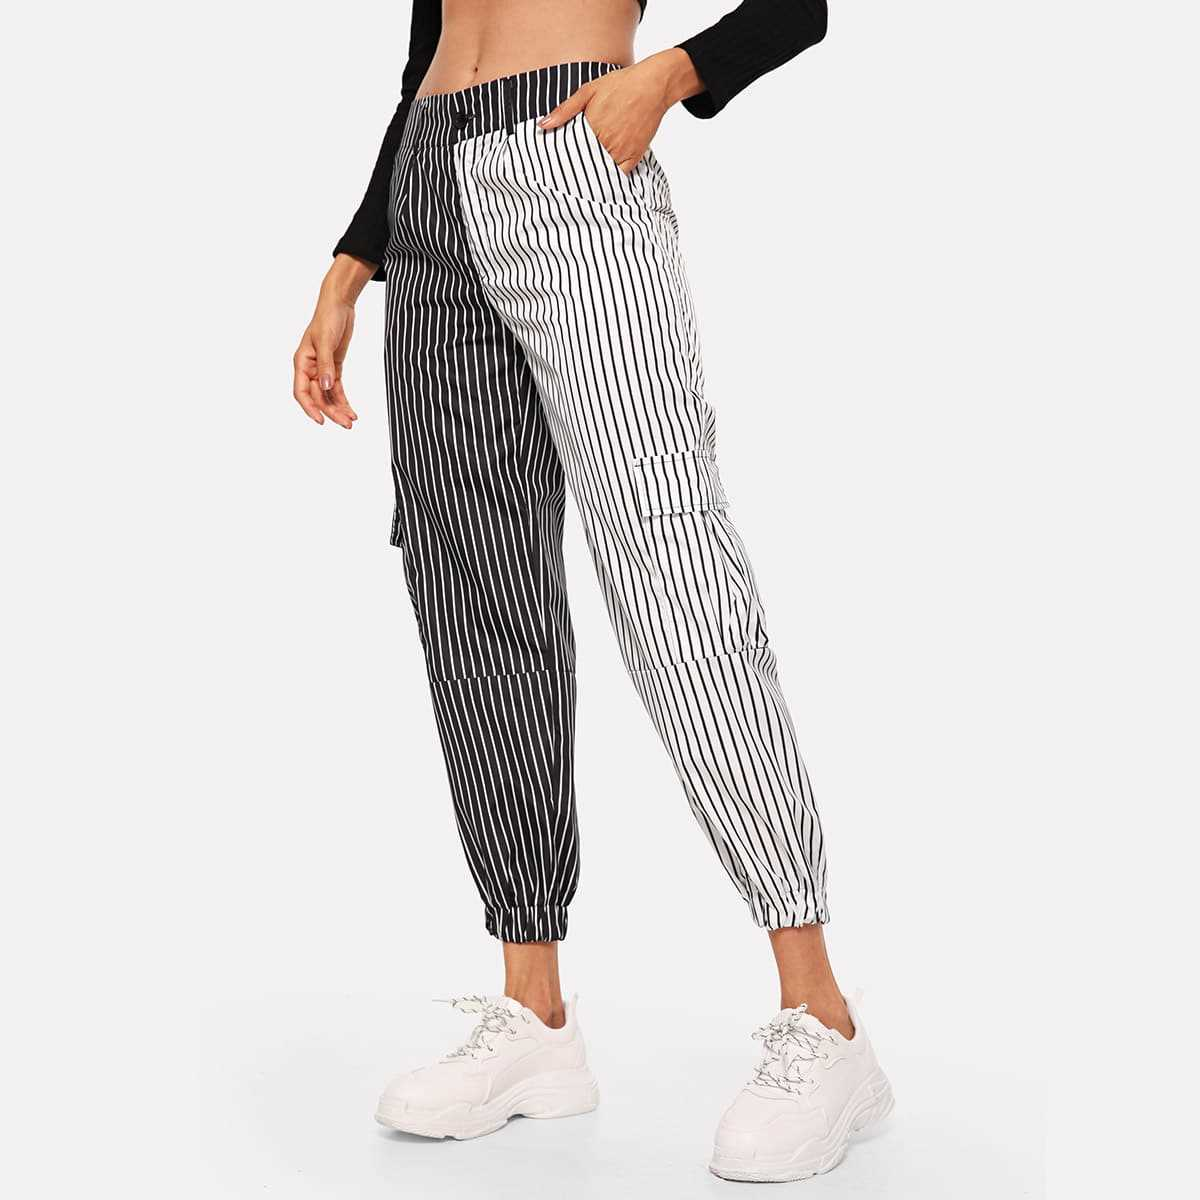 Contrast Panel Striped Pants in Black and White by ROMWE on GOOFASH